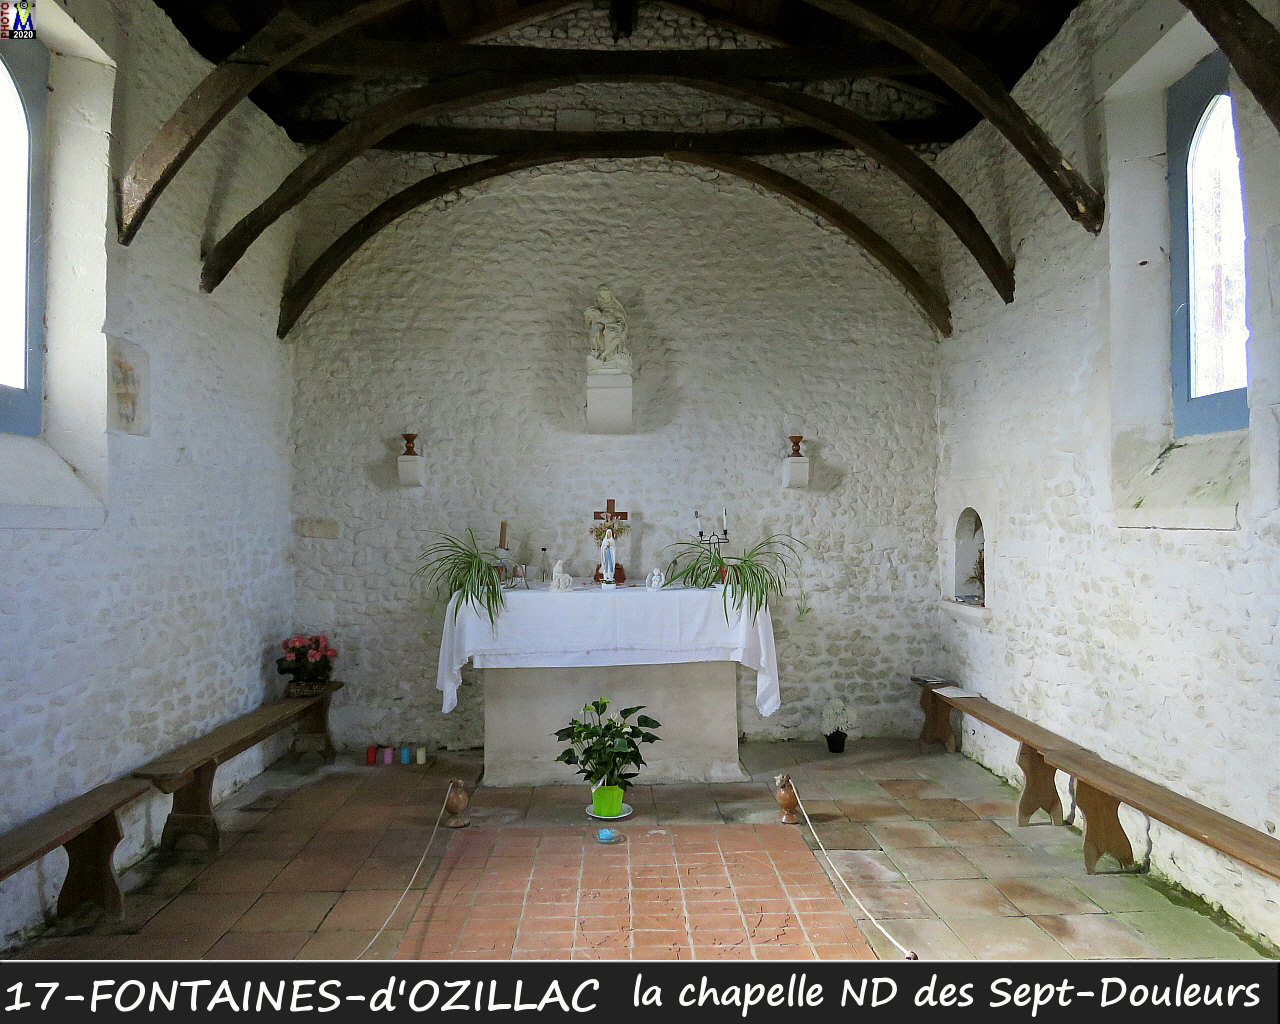 17FONTAINE-OZILLAC_chapelle_1100.jpg